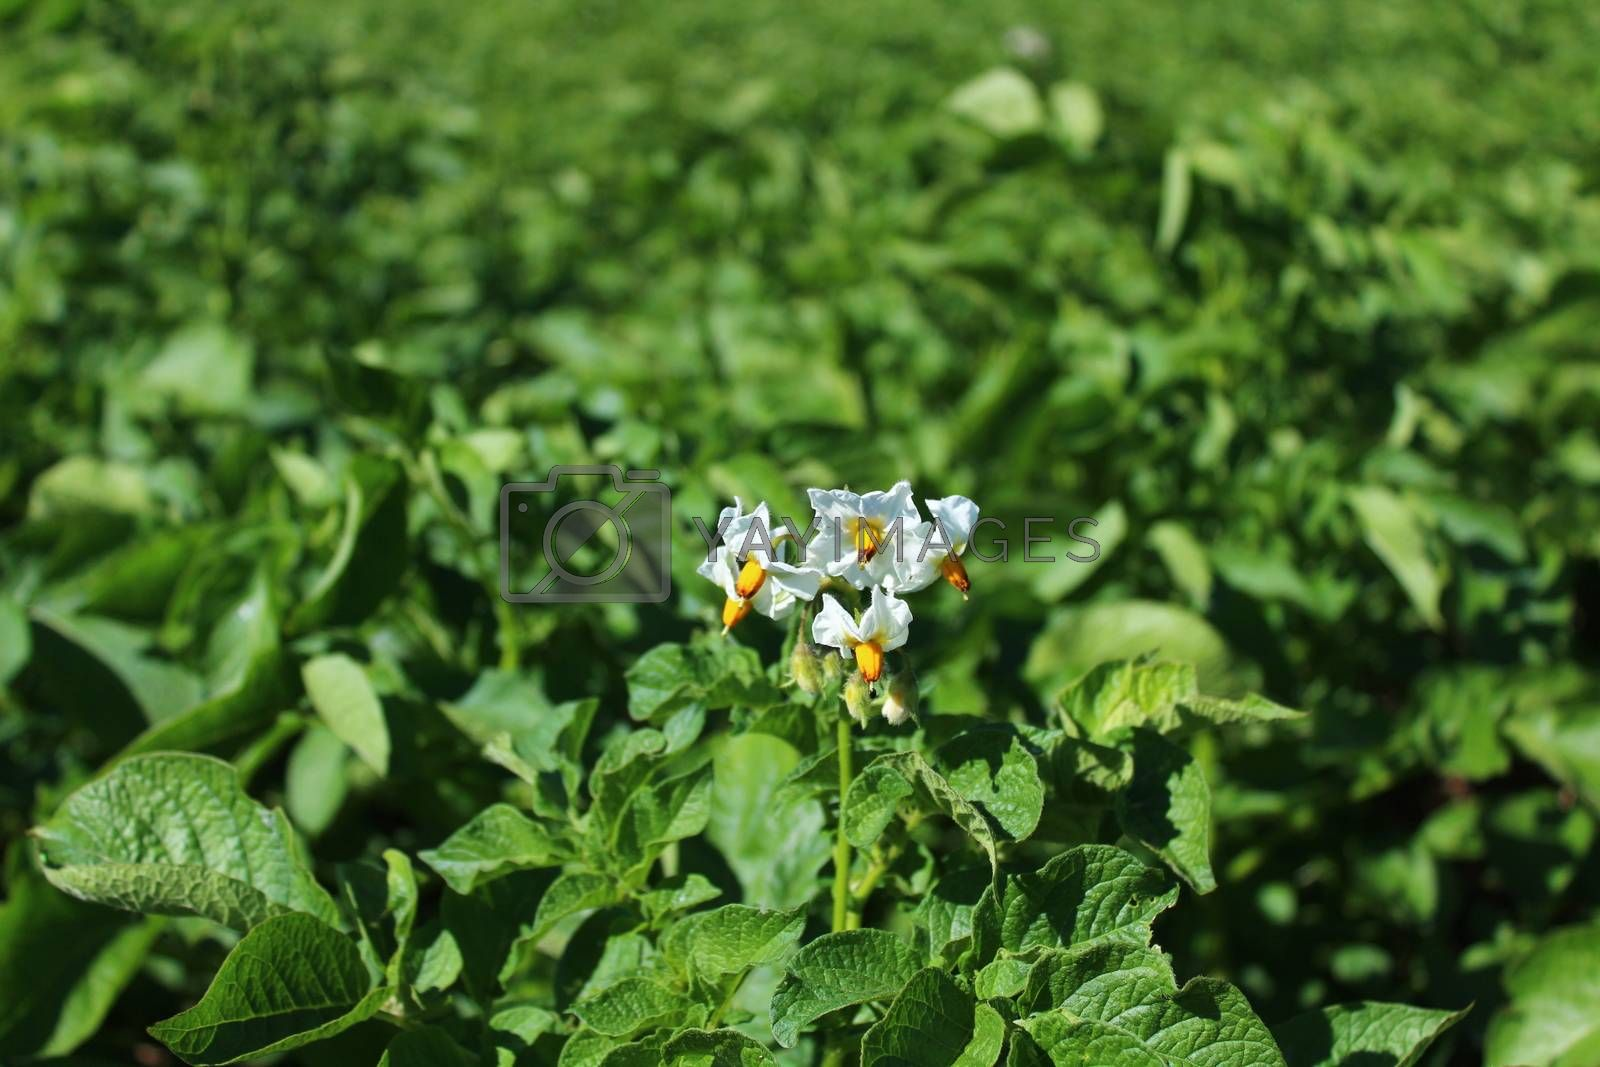 Royalty free image of many potato plants in the garden by martina_unbehauen